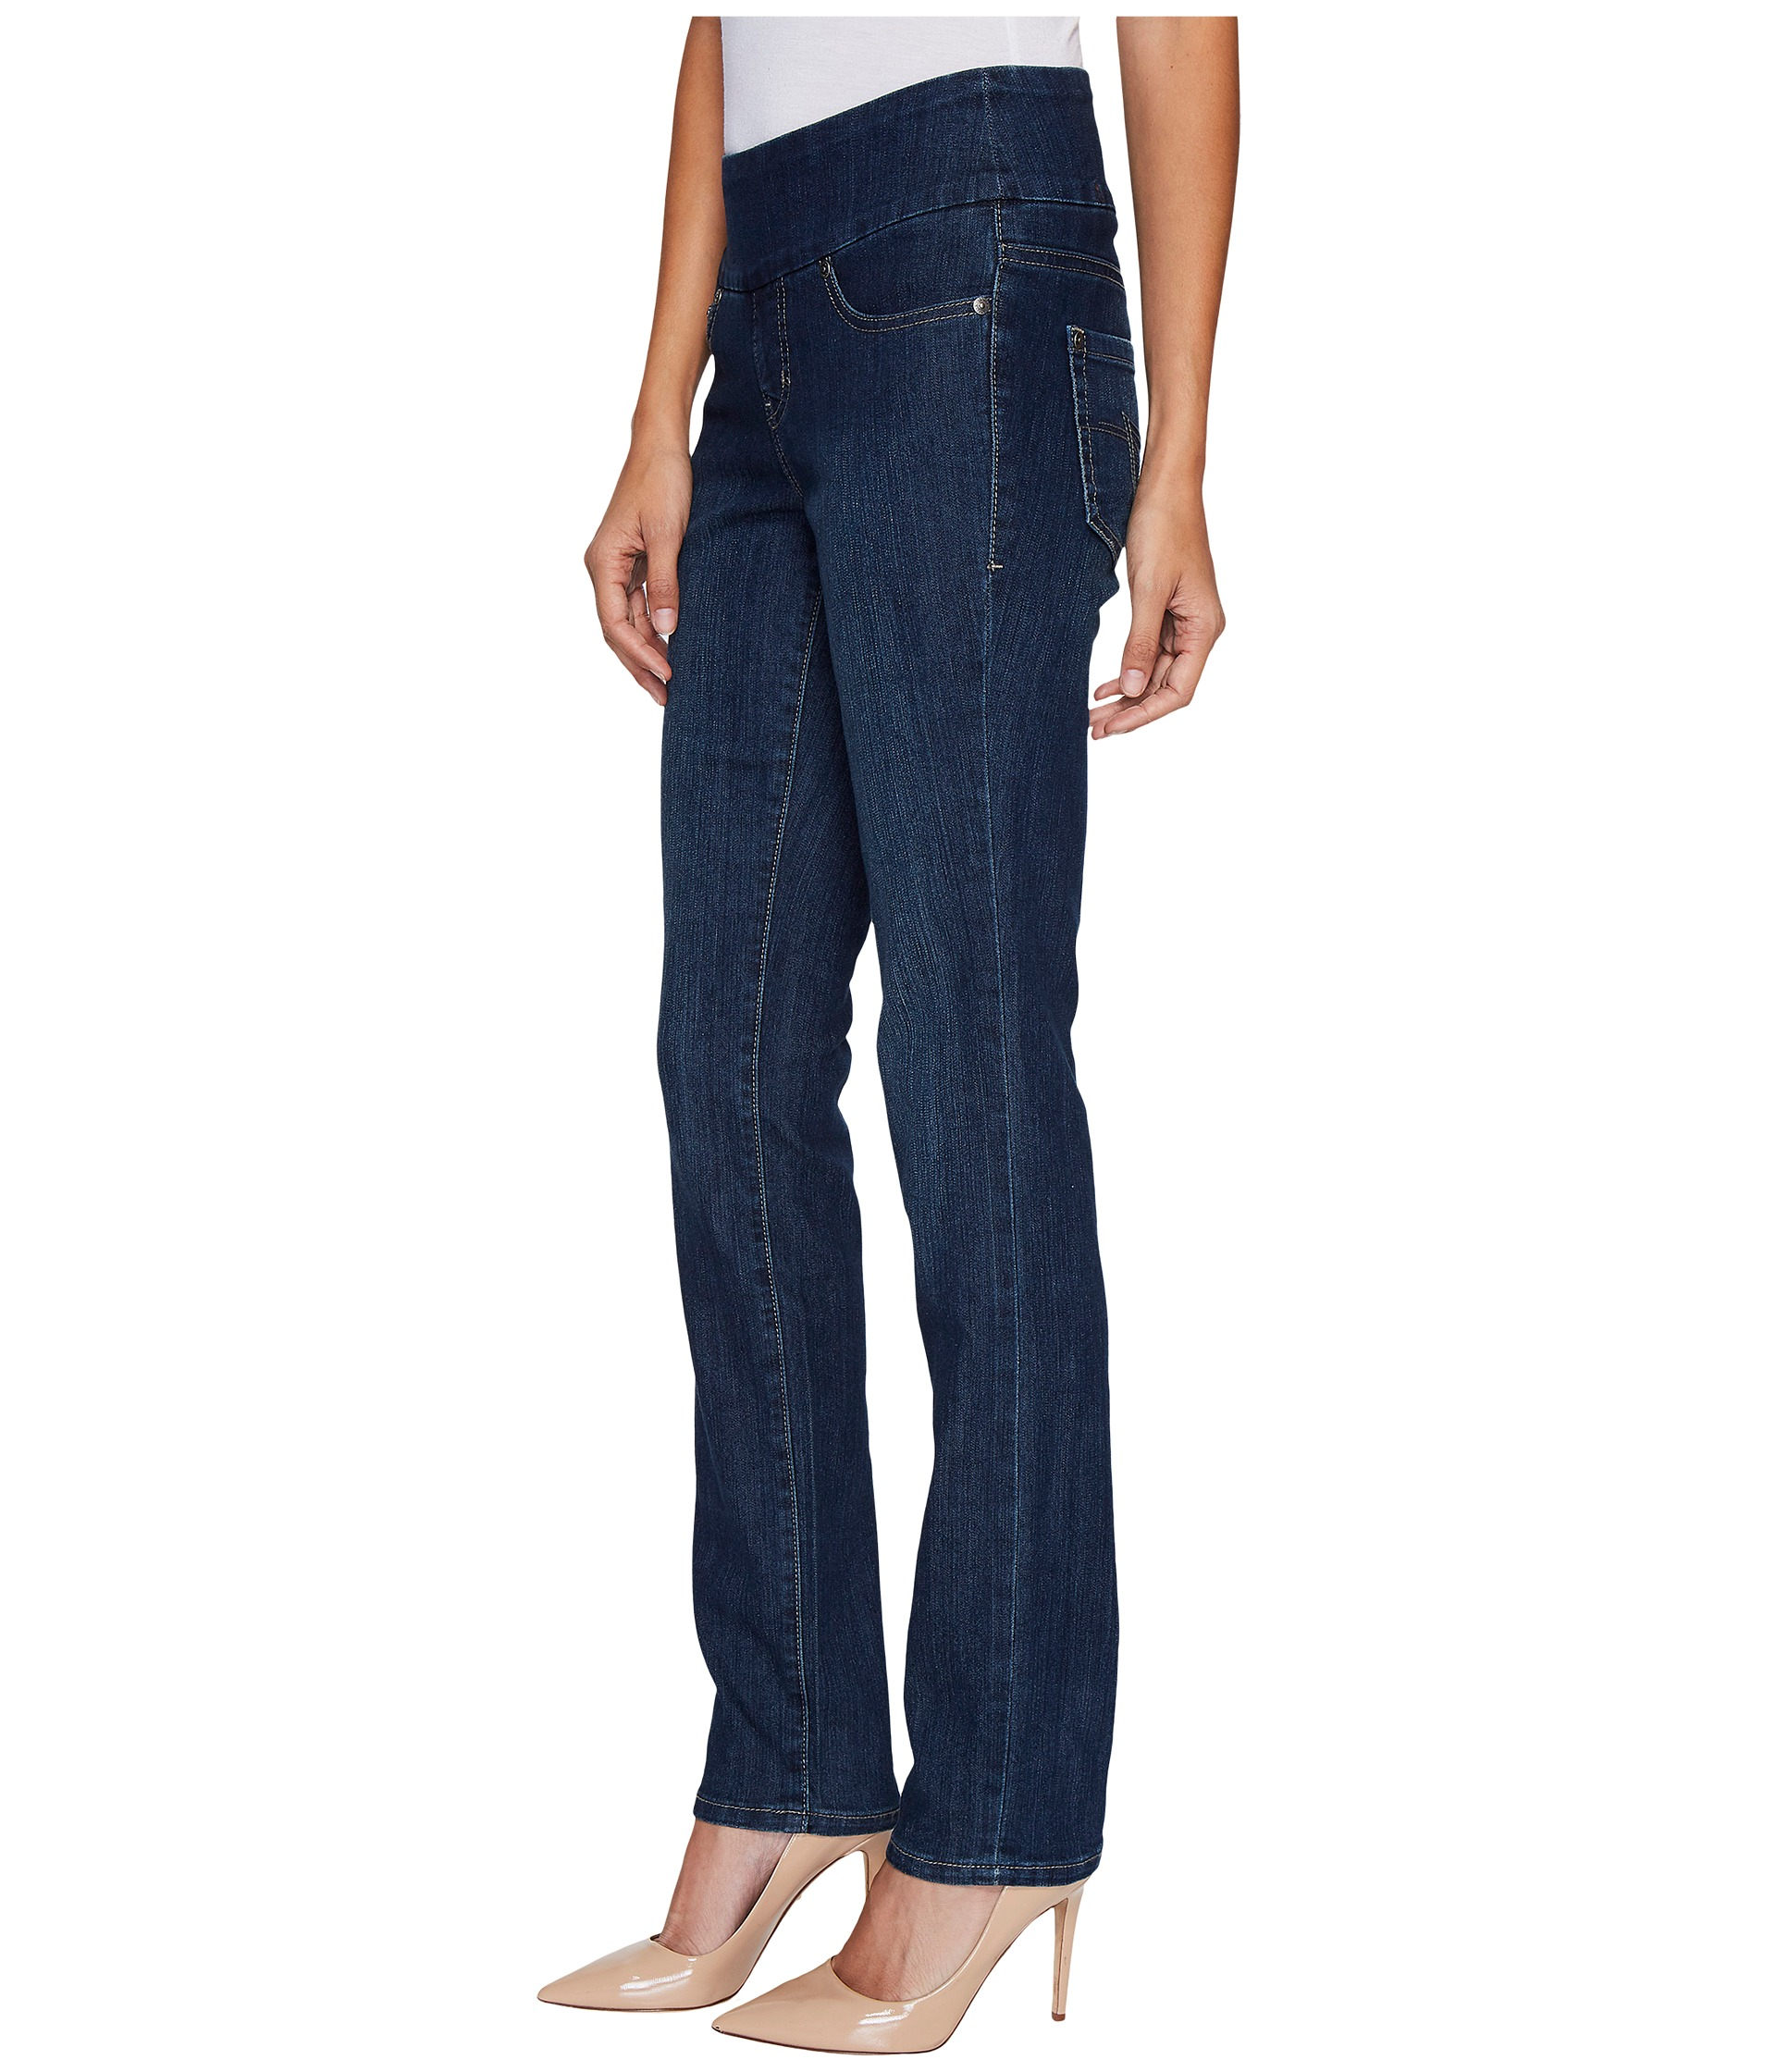 Jag Jeans Malia Pull-On Slim in Blue Shadow - Zappos.com Free ...